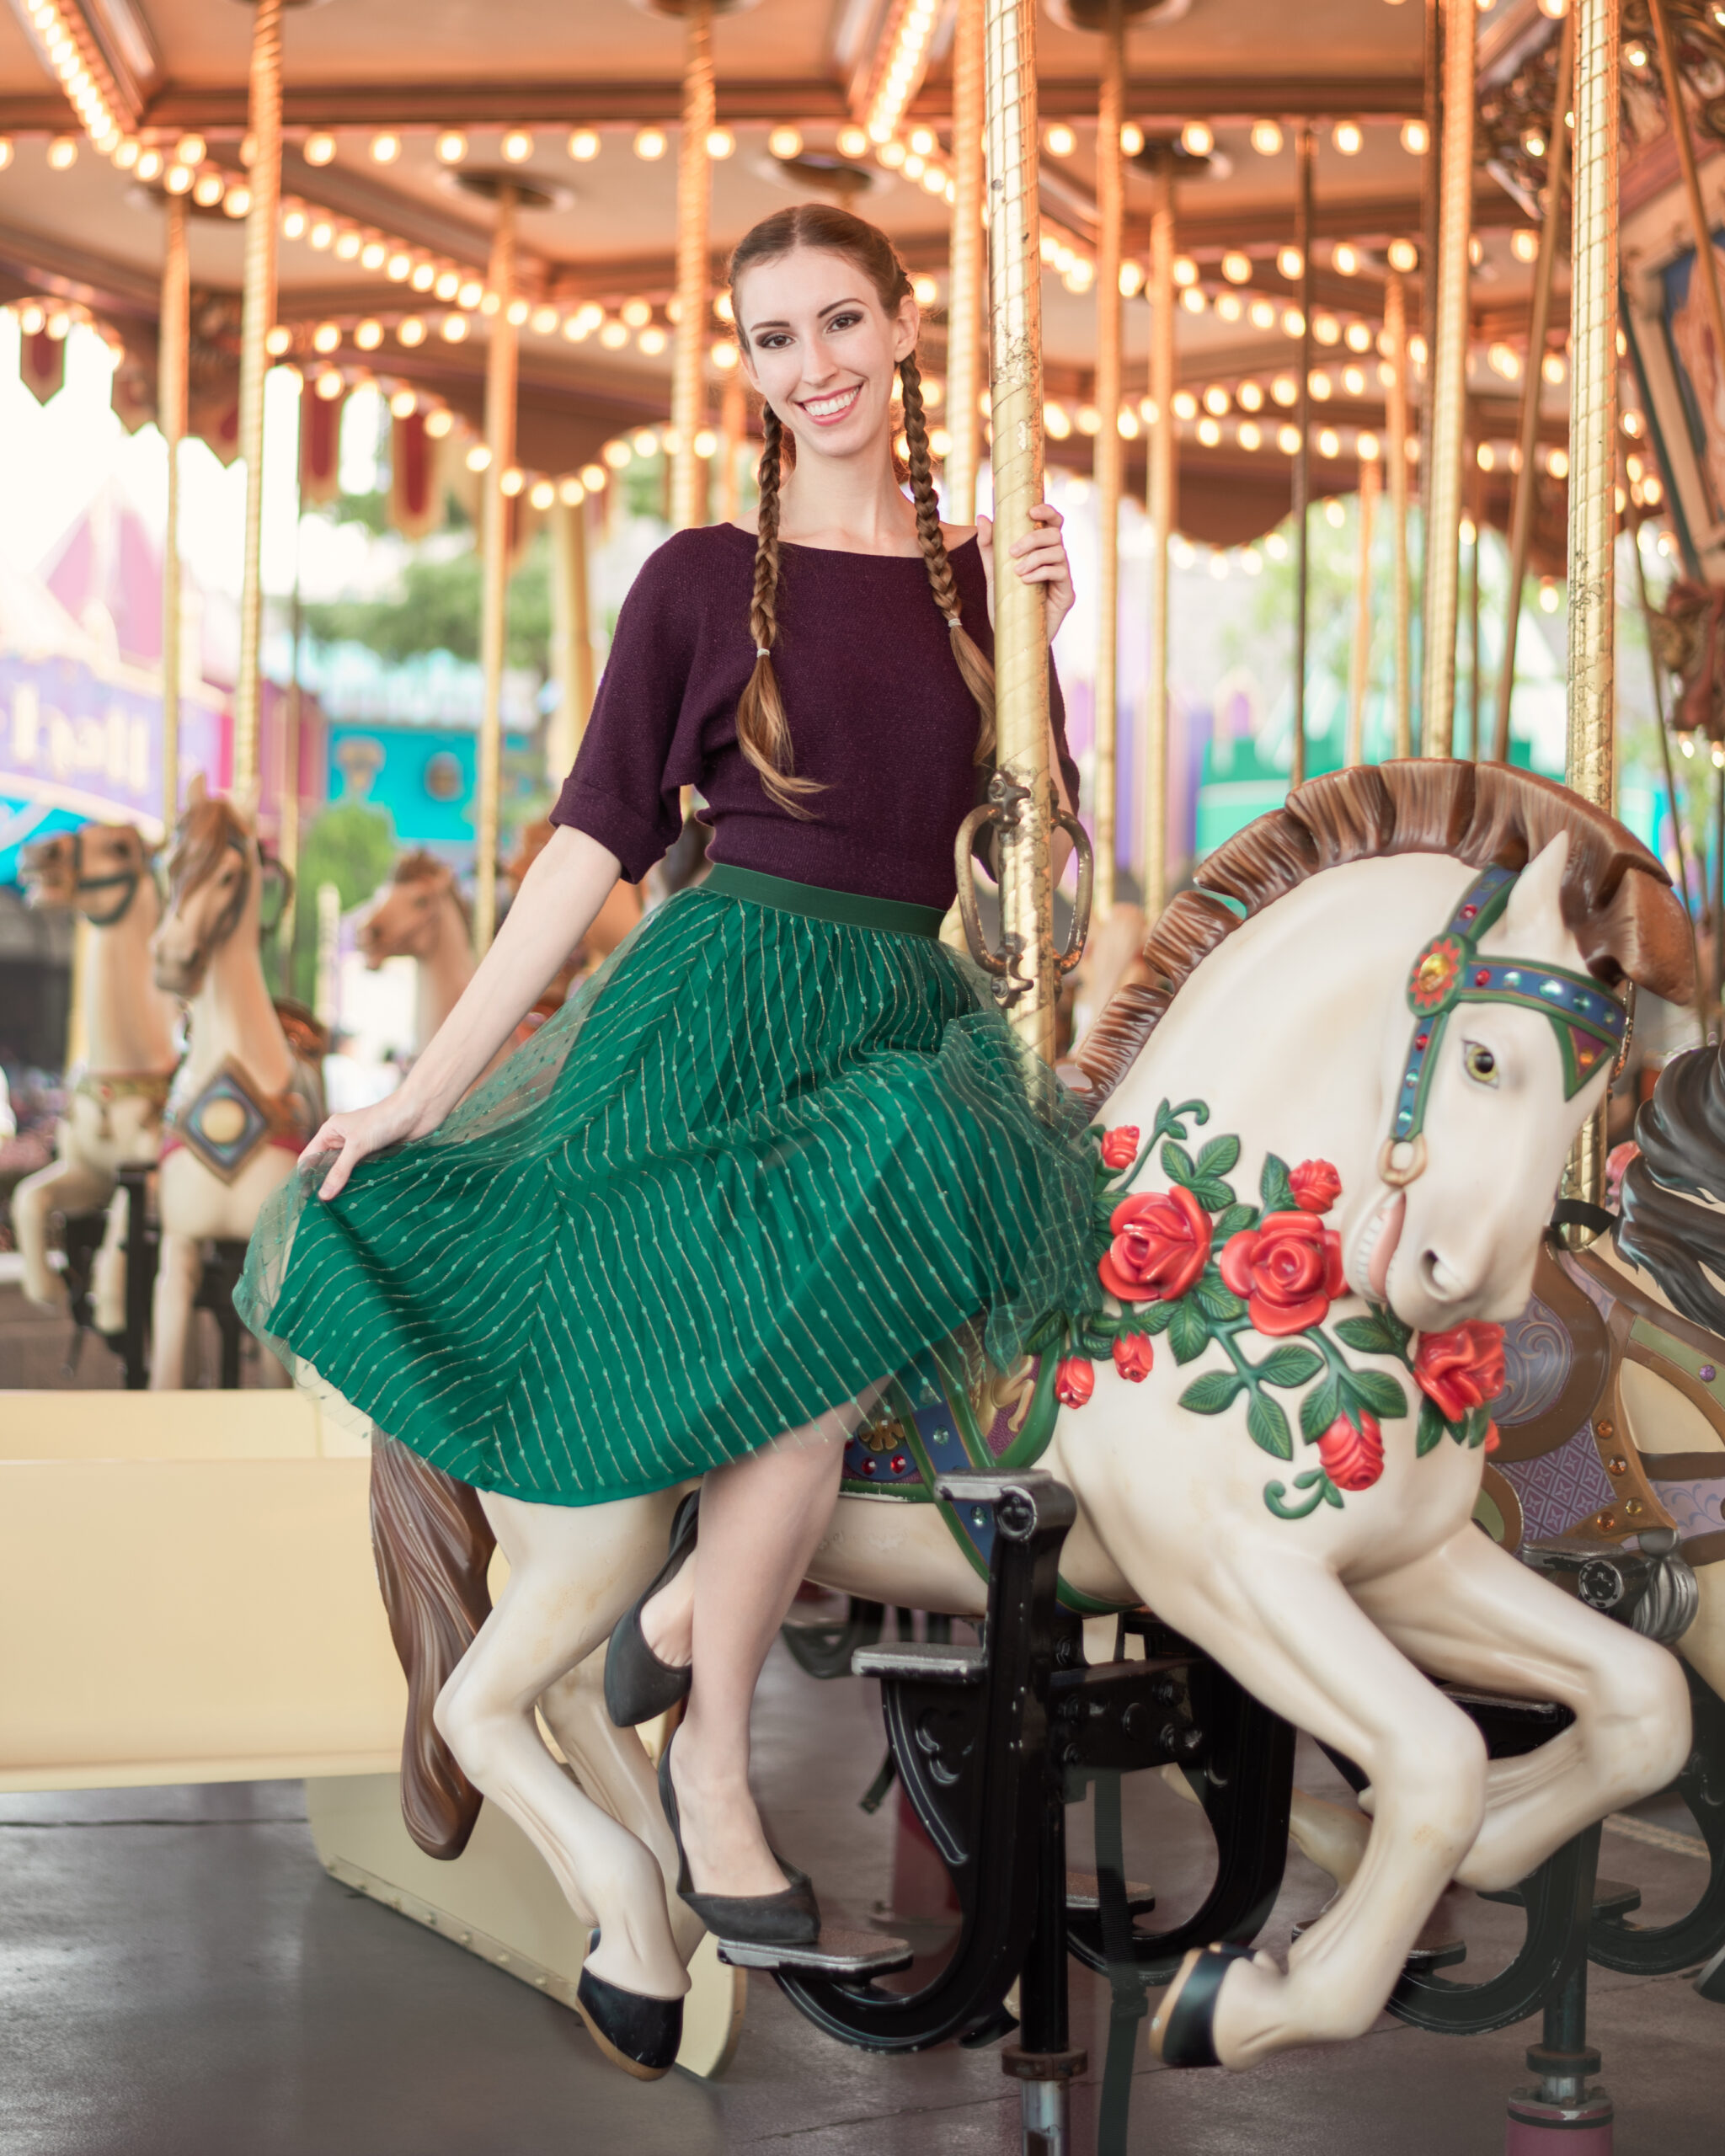 Travel portrait of Ellie wearing sustainable fashion on one of her verdant adventures in nature | Carousel at Hong Kong Disneyland